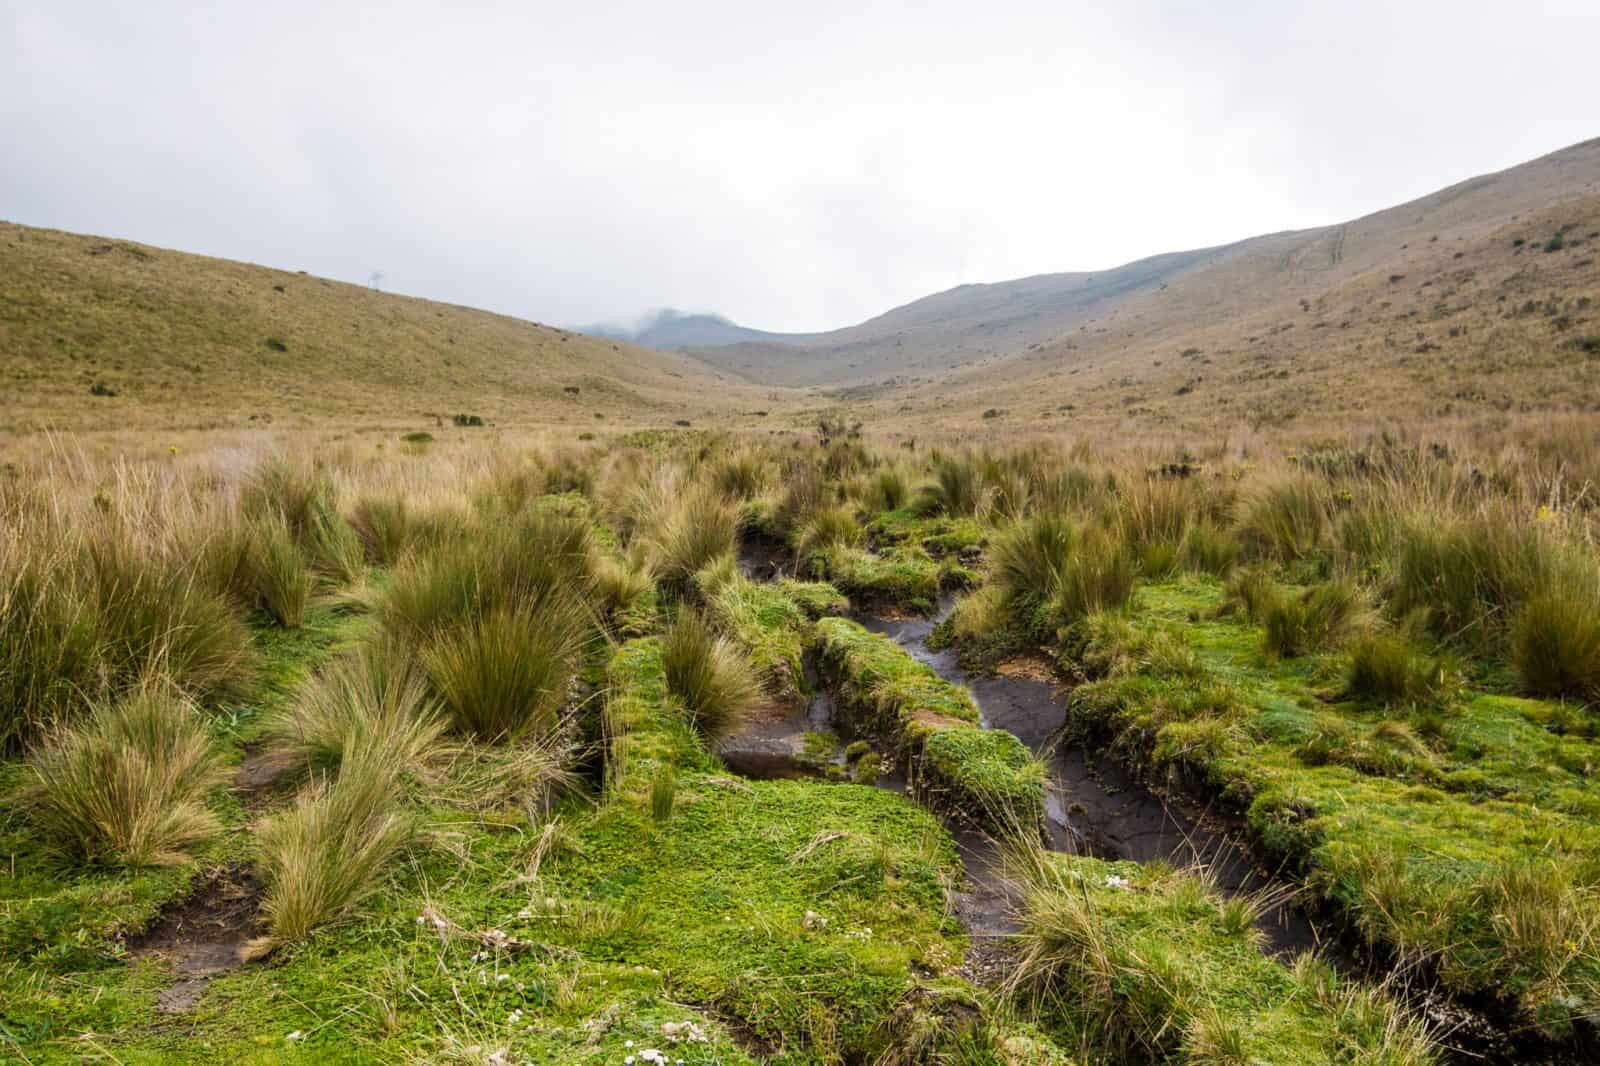 Grassy ruts at the beginning of the hike up Pichincha